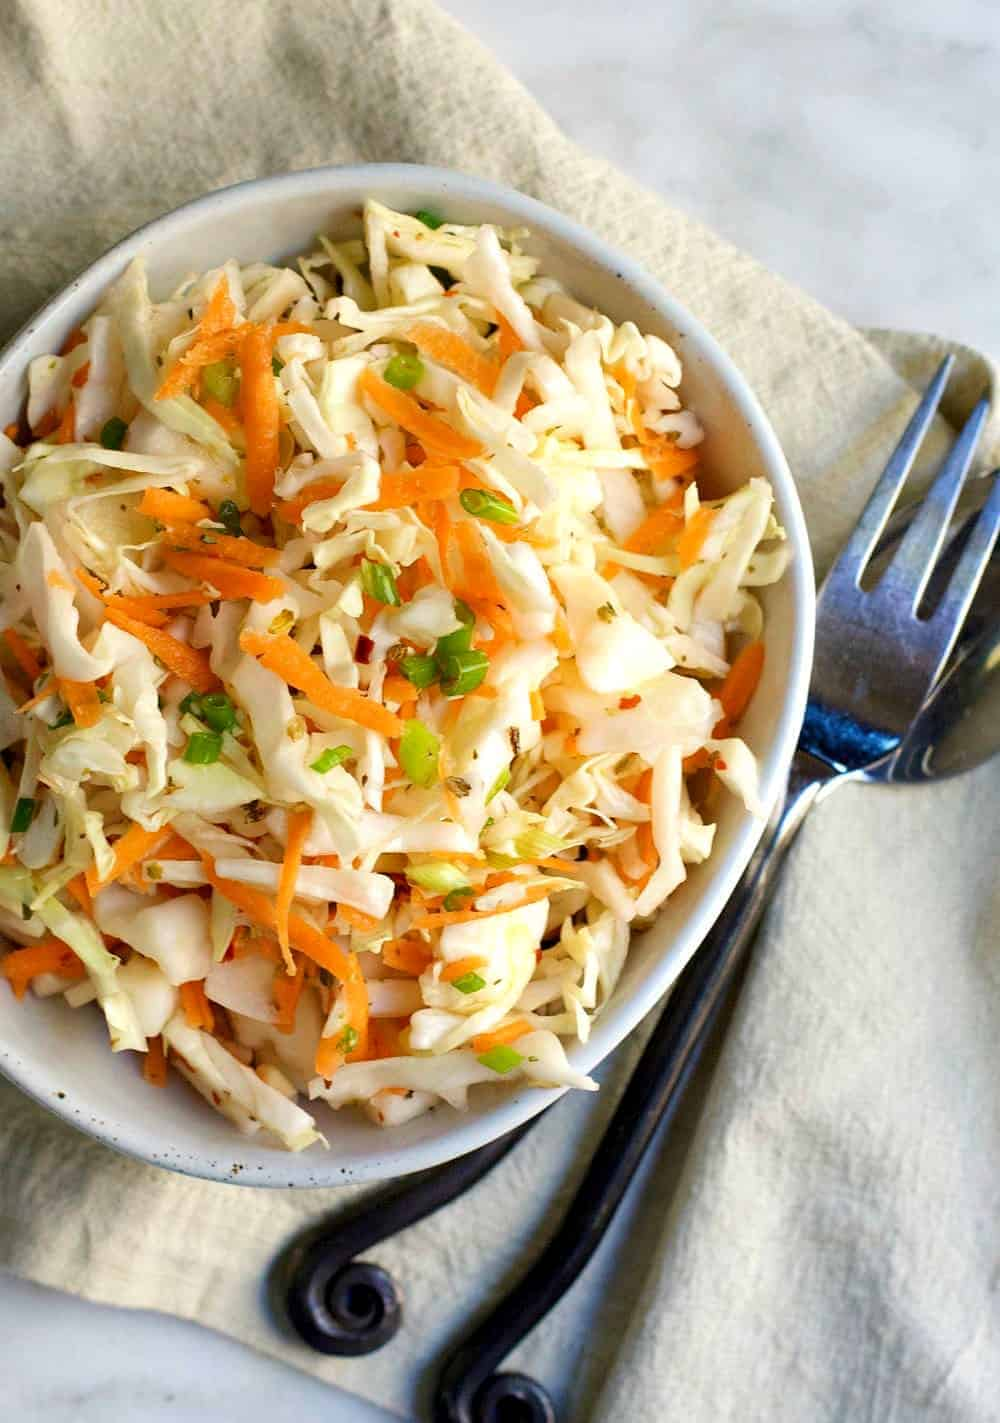 Curtido Spicy Slaw from El Salvador